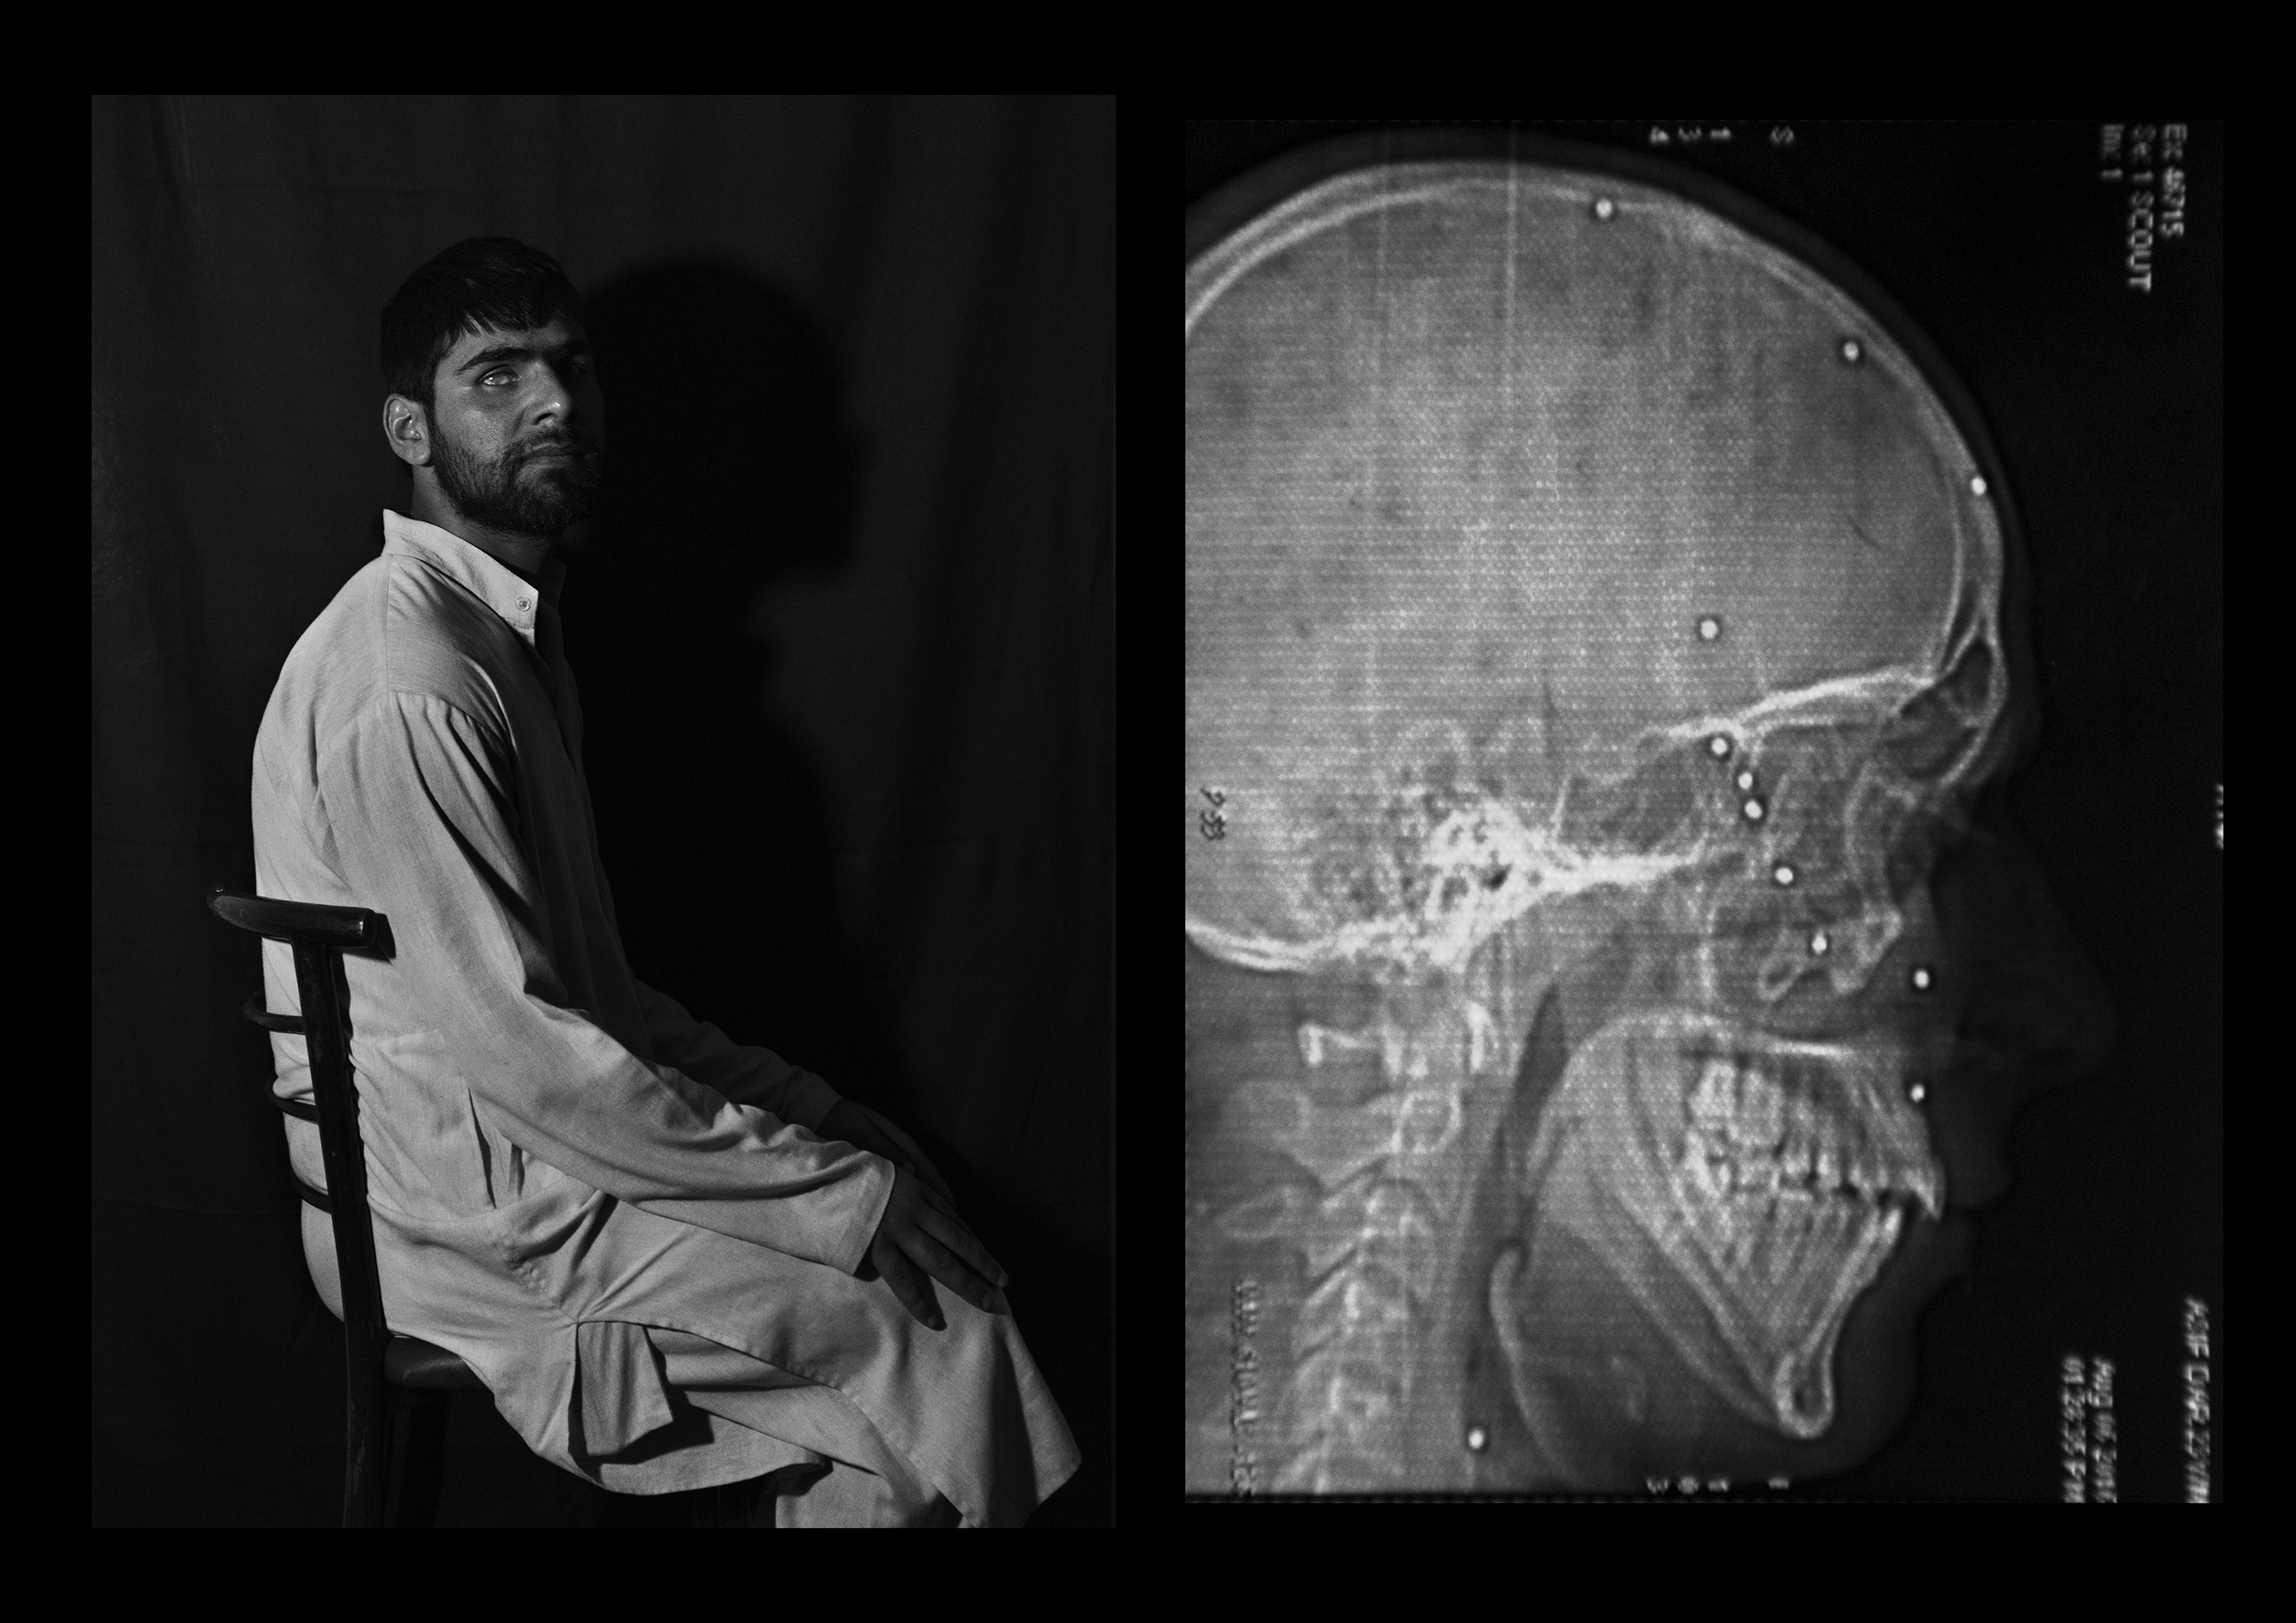 Mohammad Asif Dar, 23 years old, from Baramulla. He says he was playing cricket when he was shot in the head, shoulder and chest. Despite eight surgeries, he only has 10% of his vision left in his right eye.